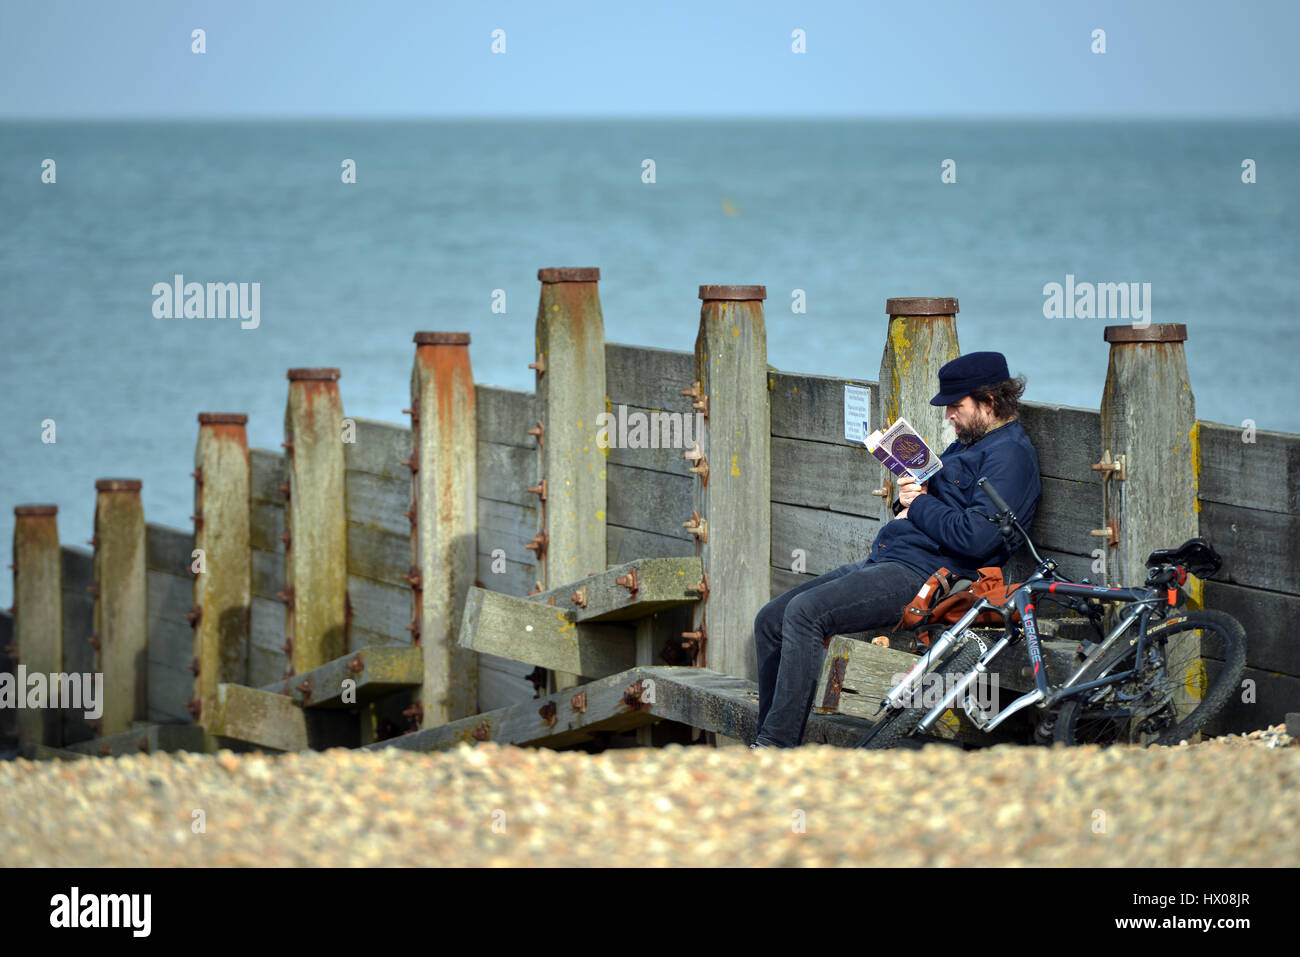 Man with a bike reading a book, Peter Frankopan's The Silk Roads, on a shingle beach, Whitstable, Kent - Stock Image